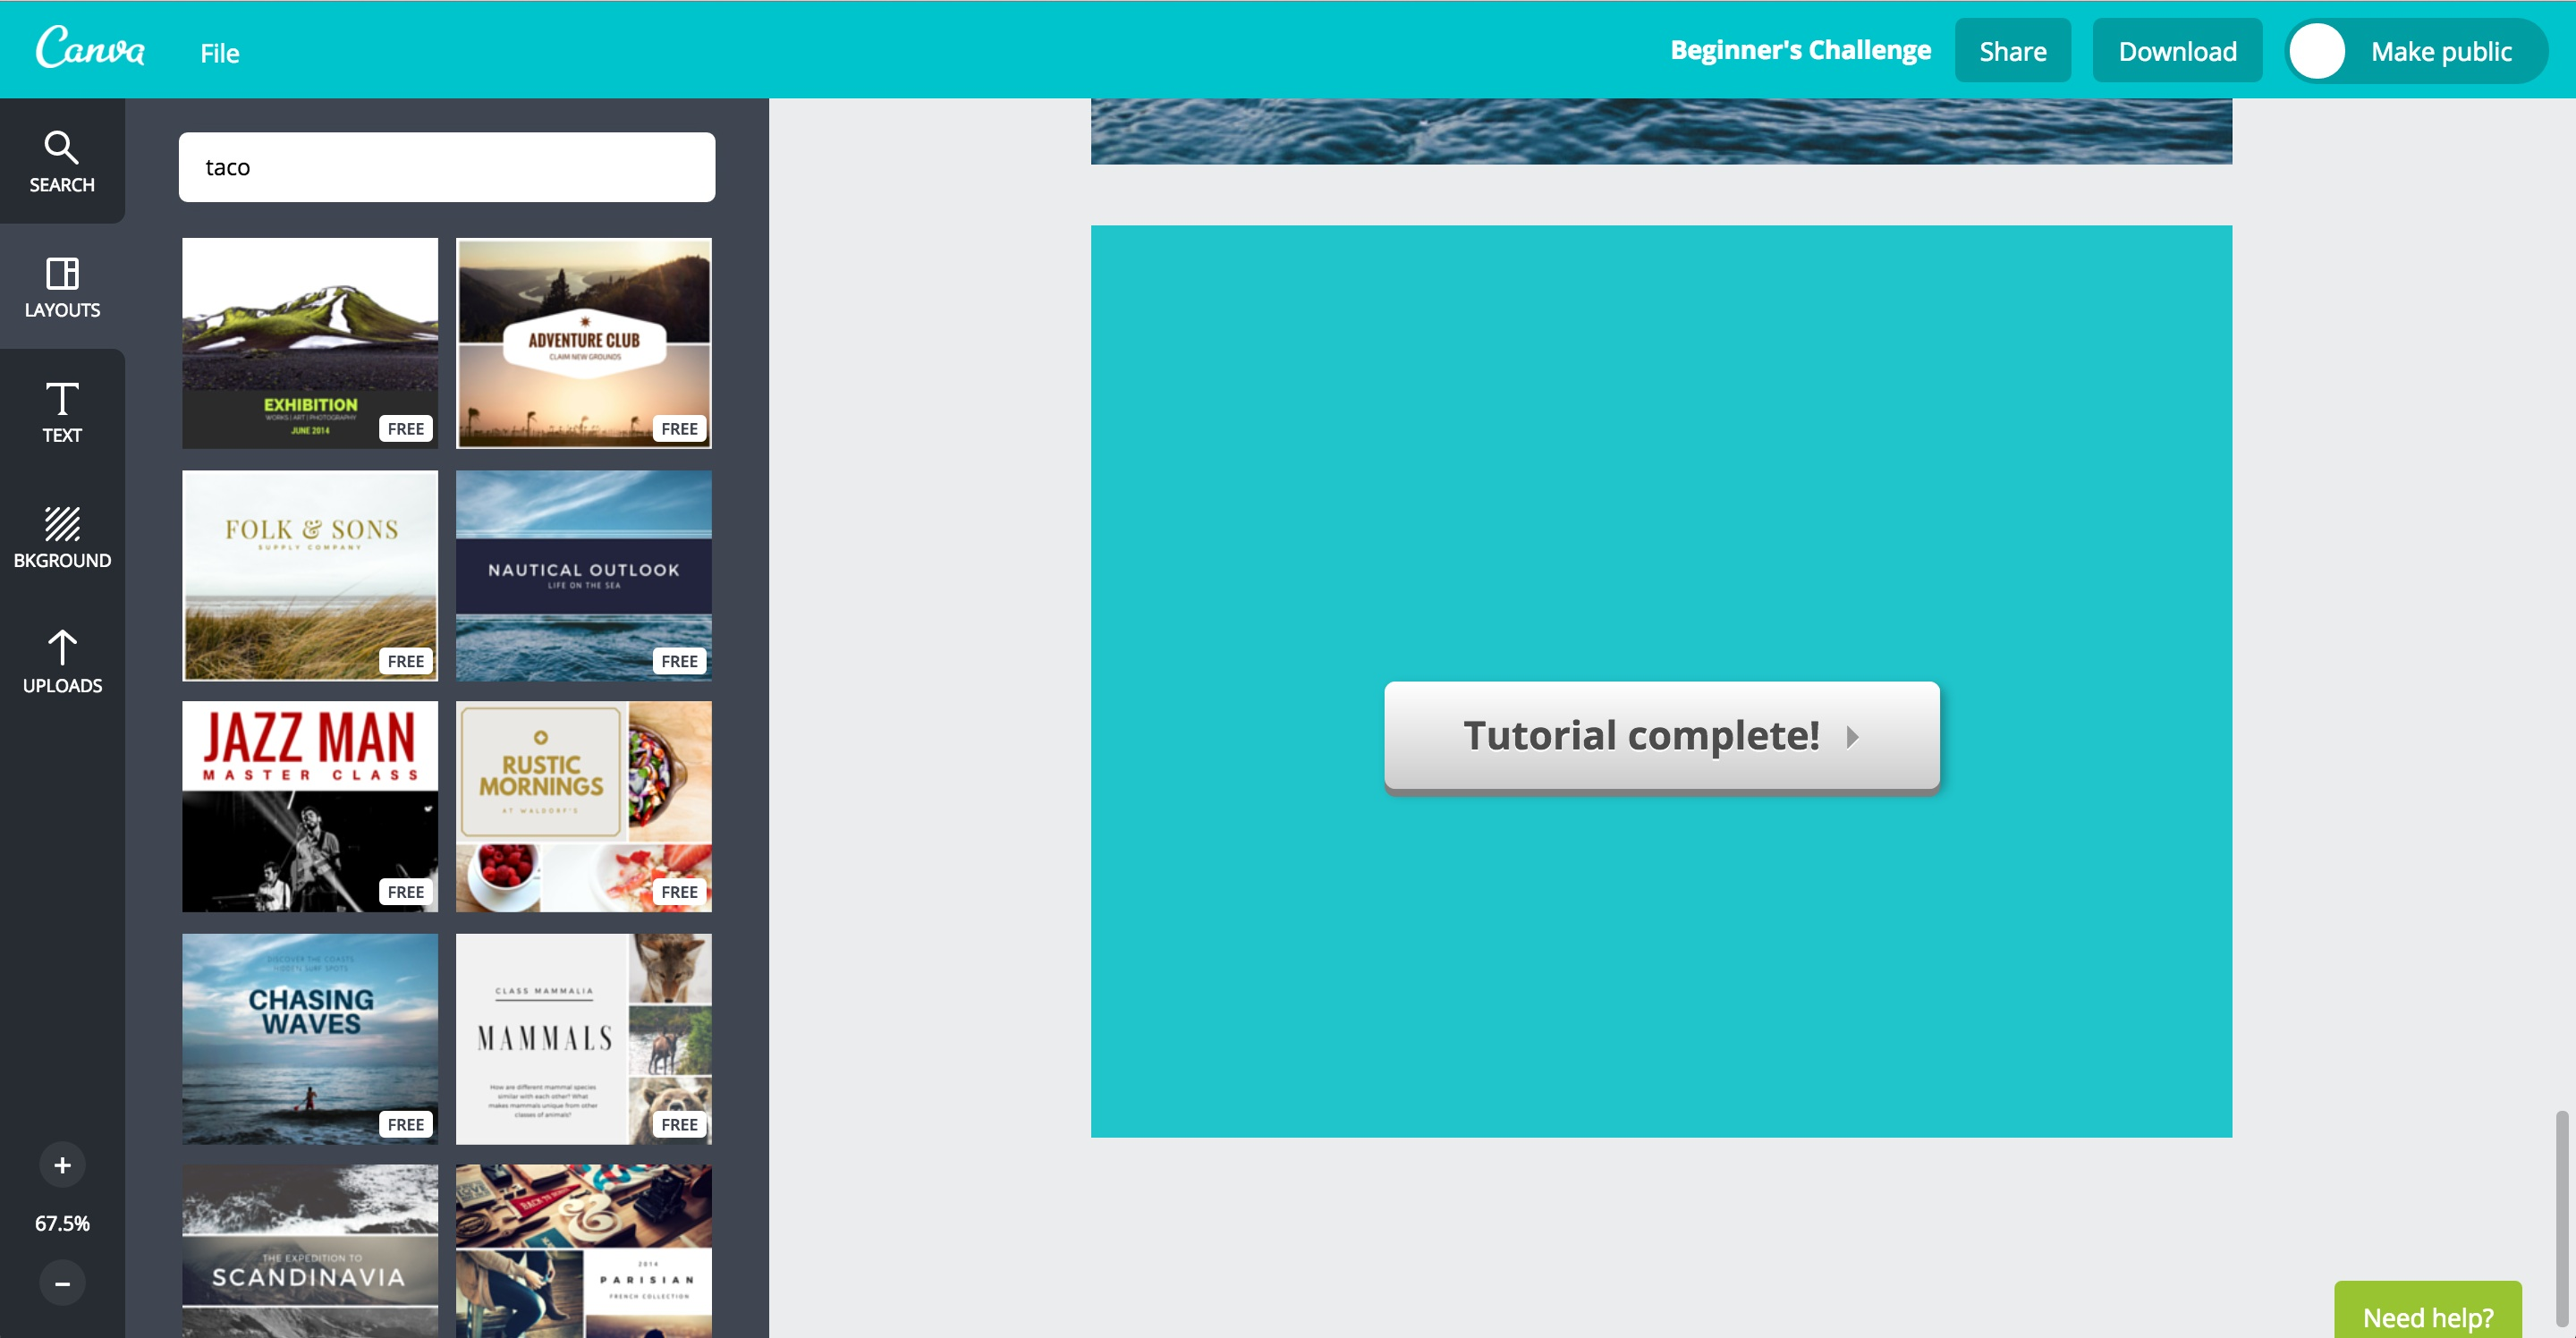 canva user onboarding step 14